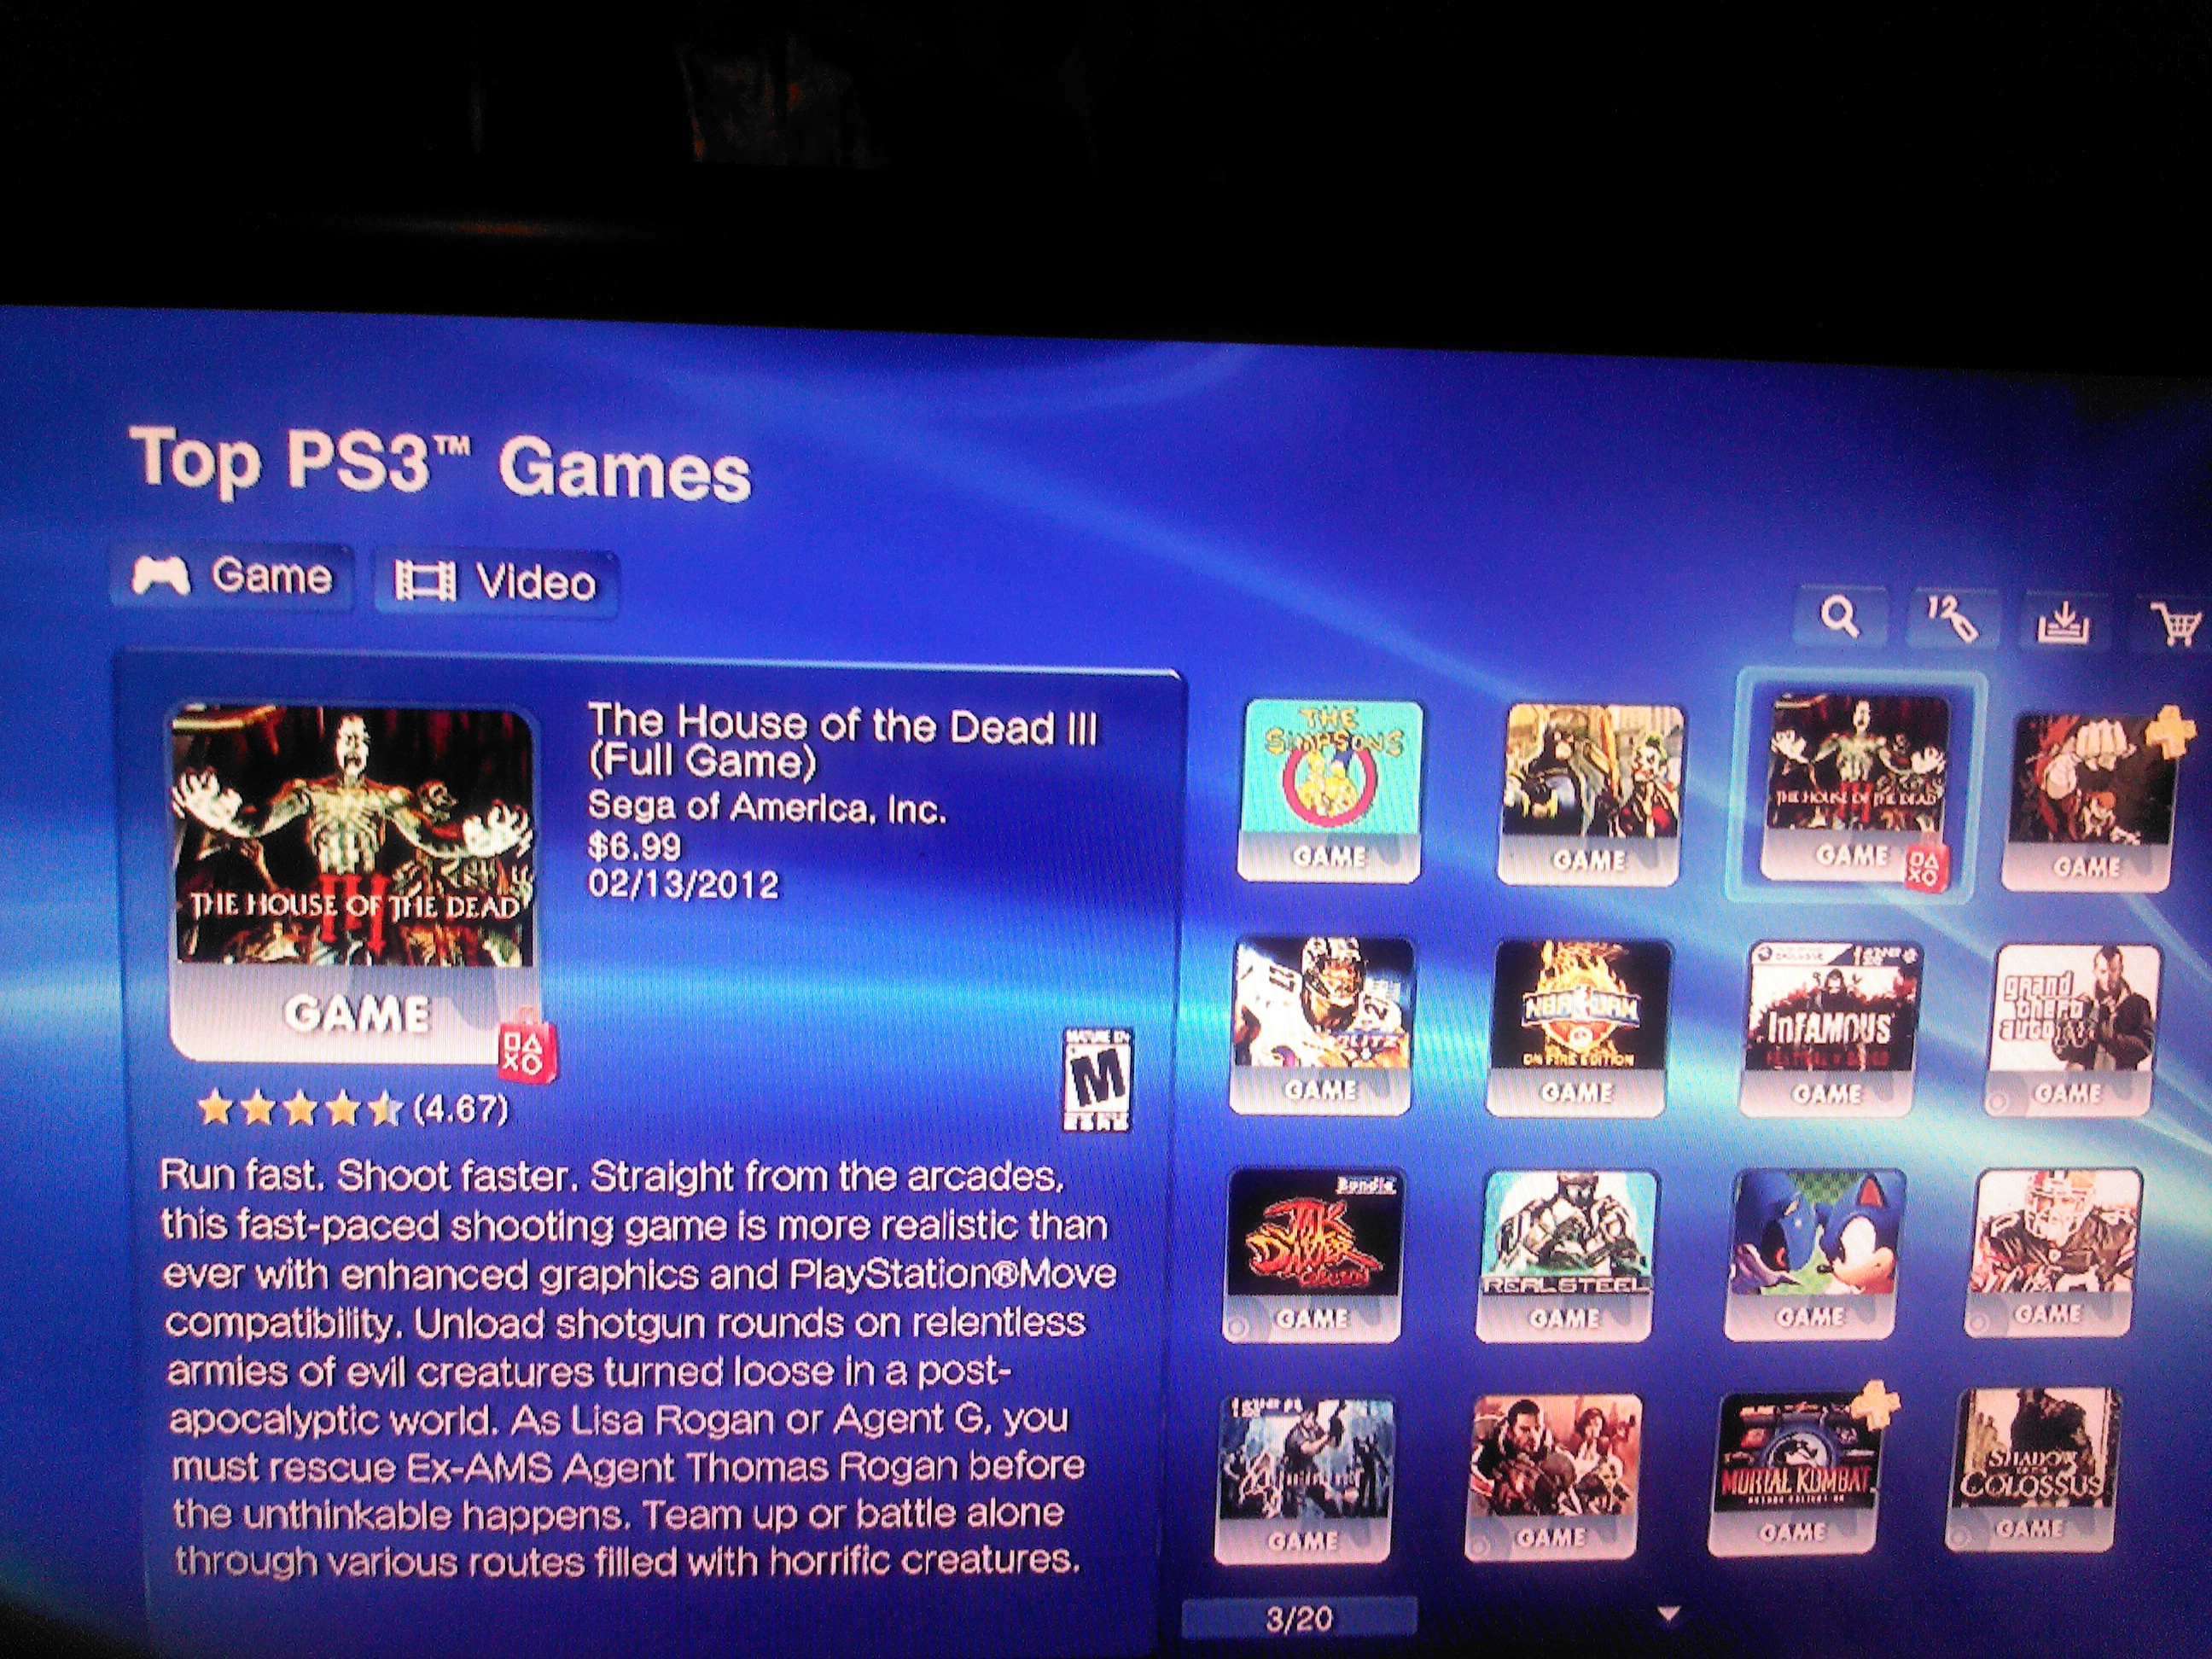 The House Of The Dead Iii Is The 3 Best Selling Psn Game Of The Month The Website Of The Dead